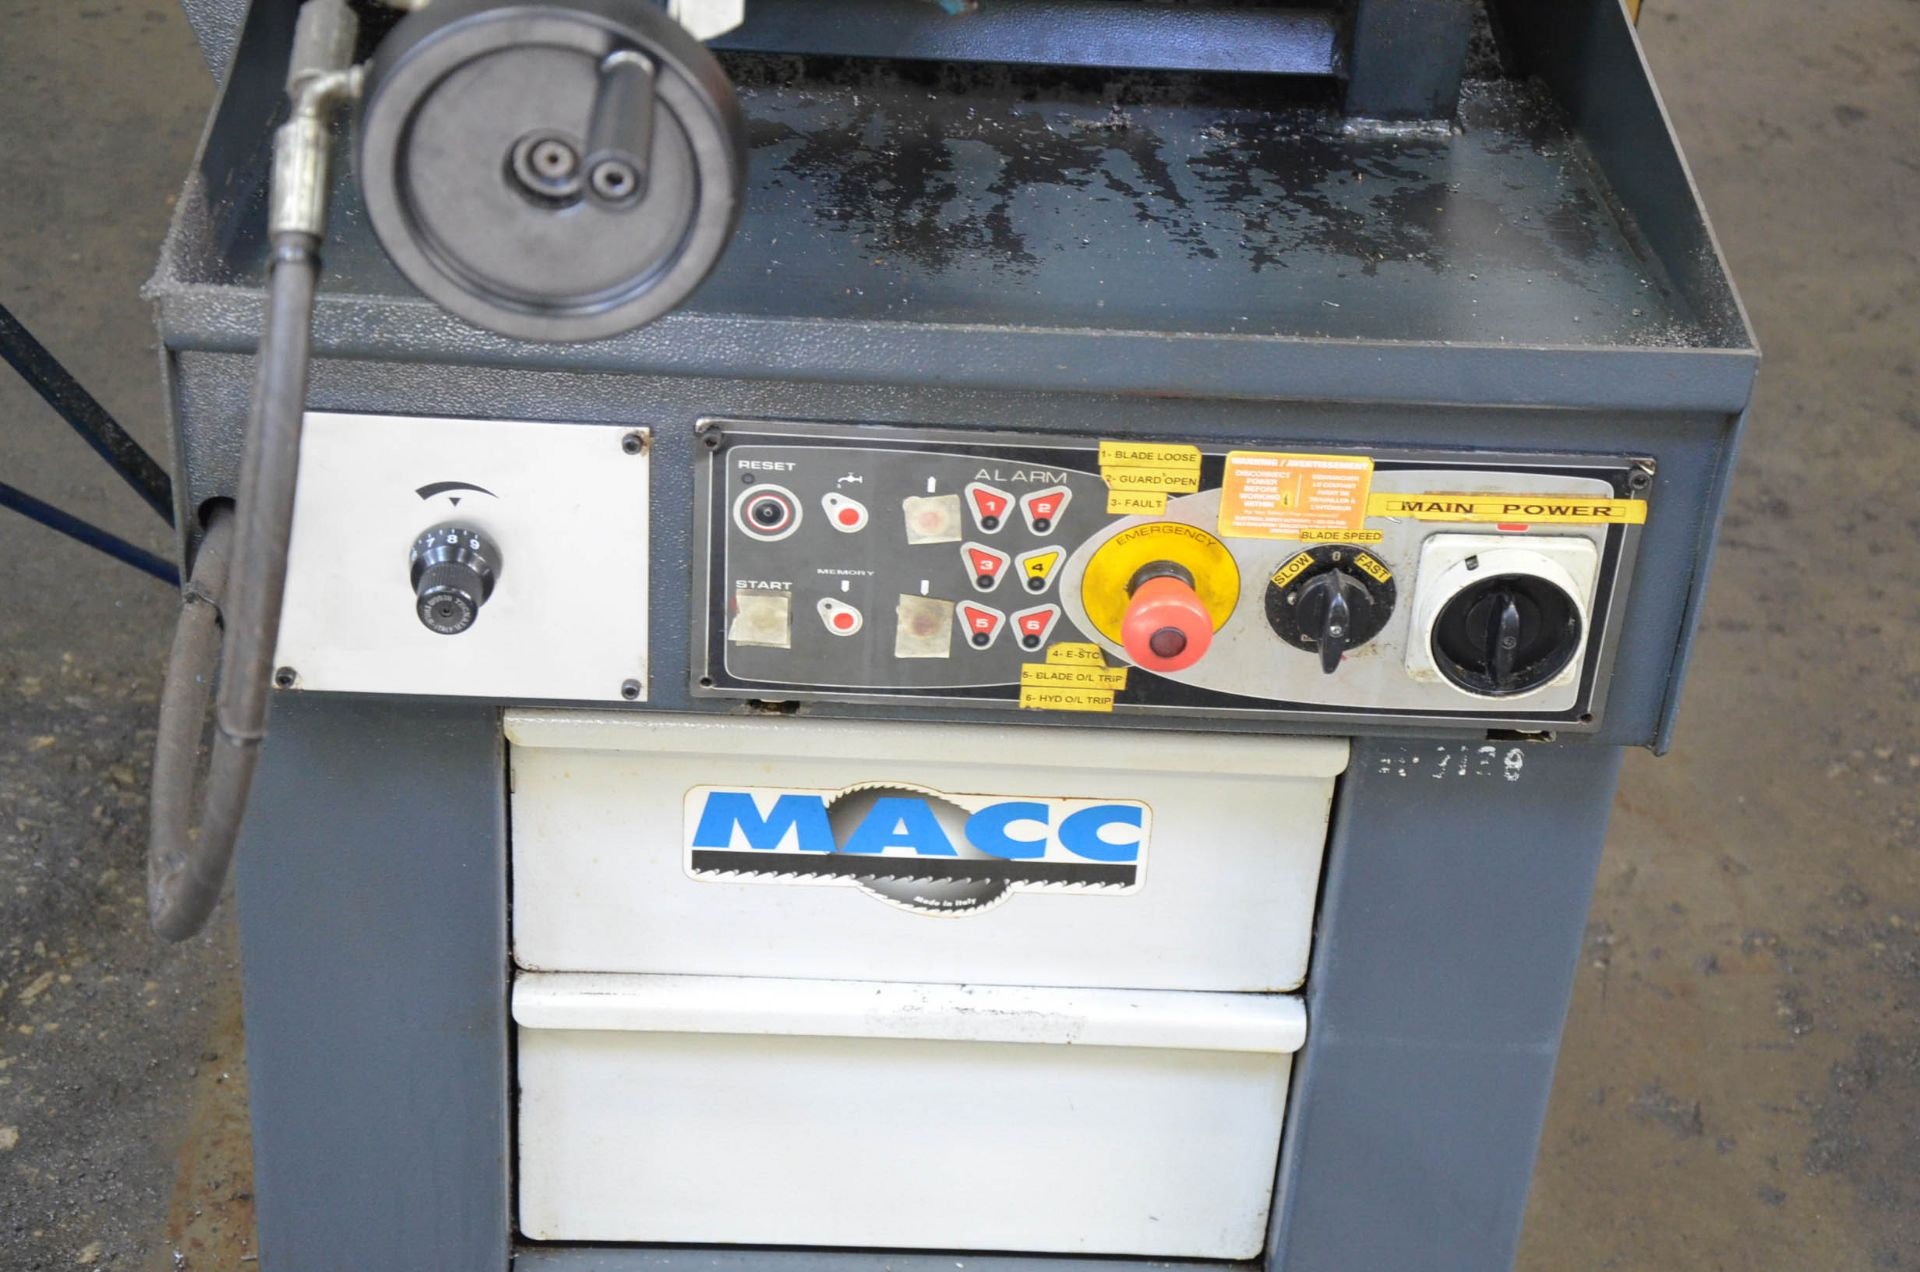 """MACC (2008) SPECIAL 400 SI 16"""" METAL CUTTING HORIZONTAL BAND SAW WITH MITER CAPABILITY, COOLANT, - Image 4 of 6"""